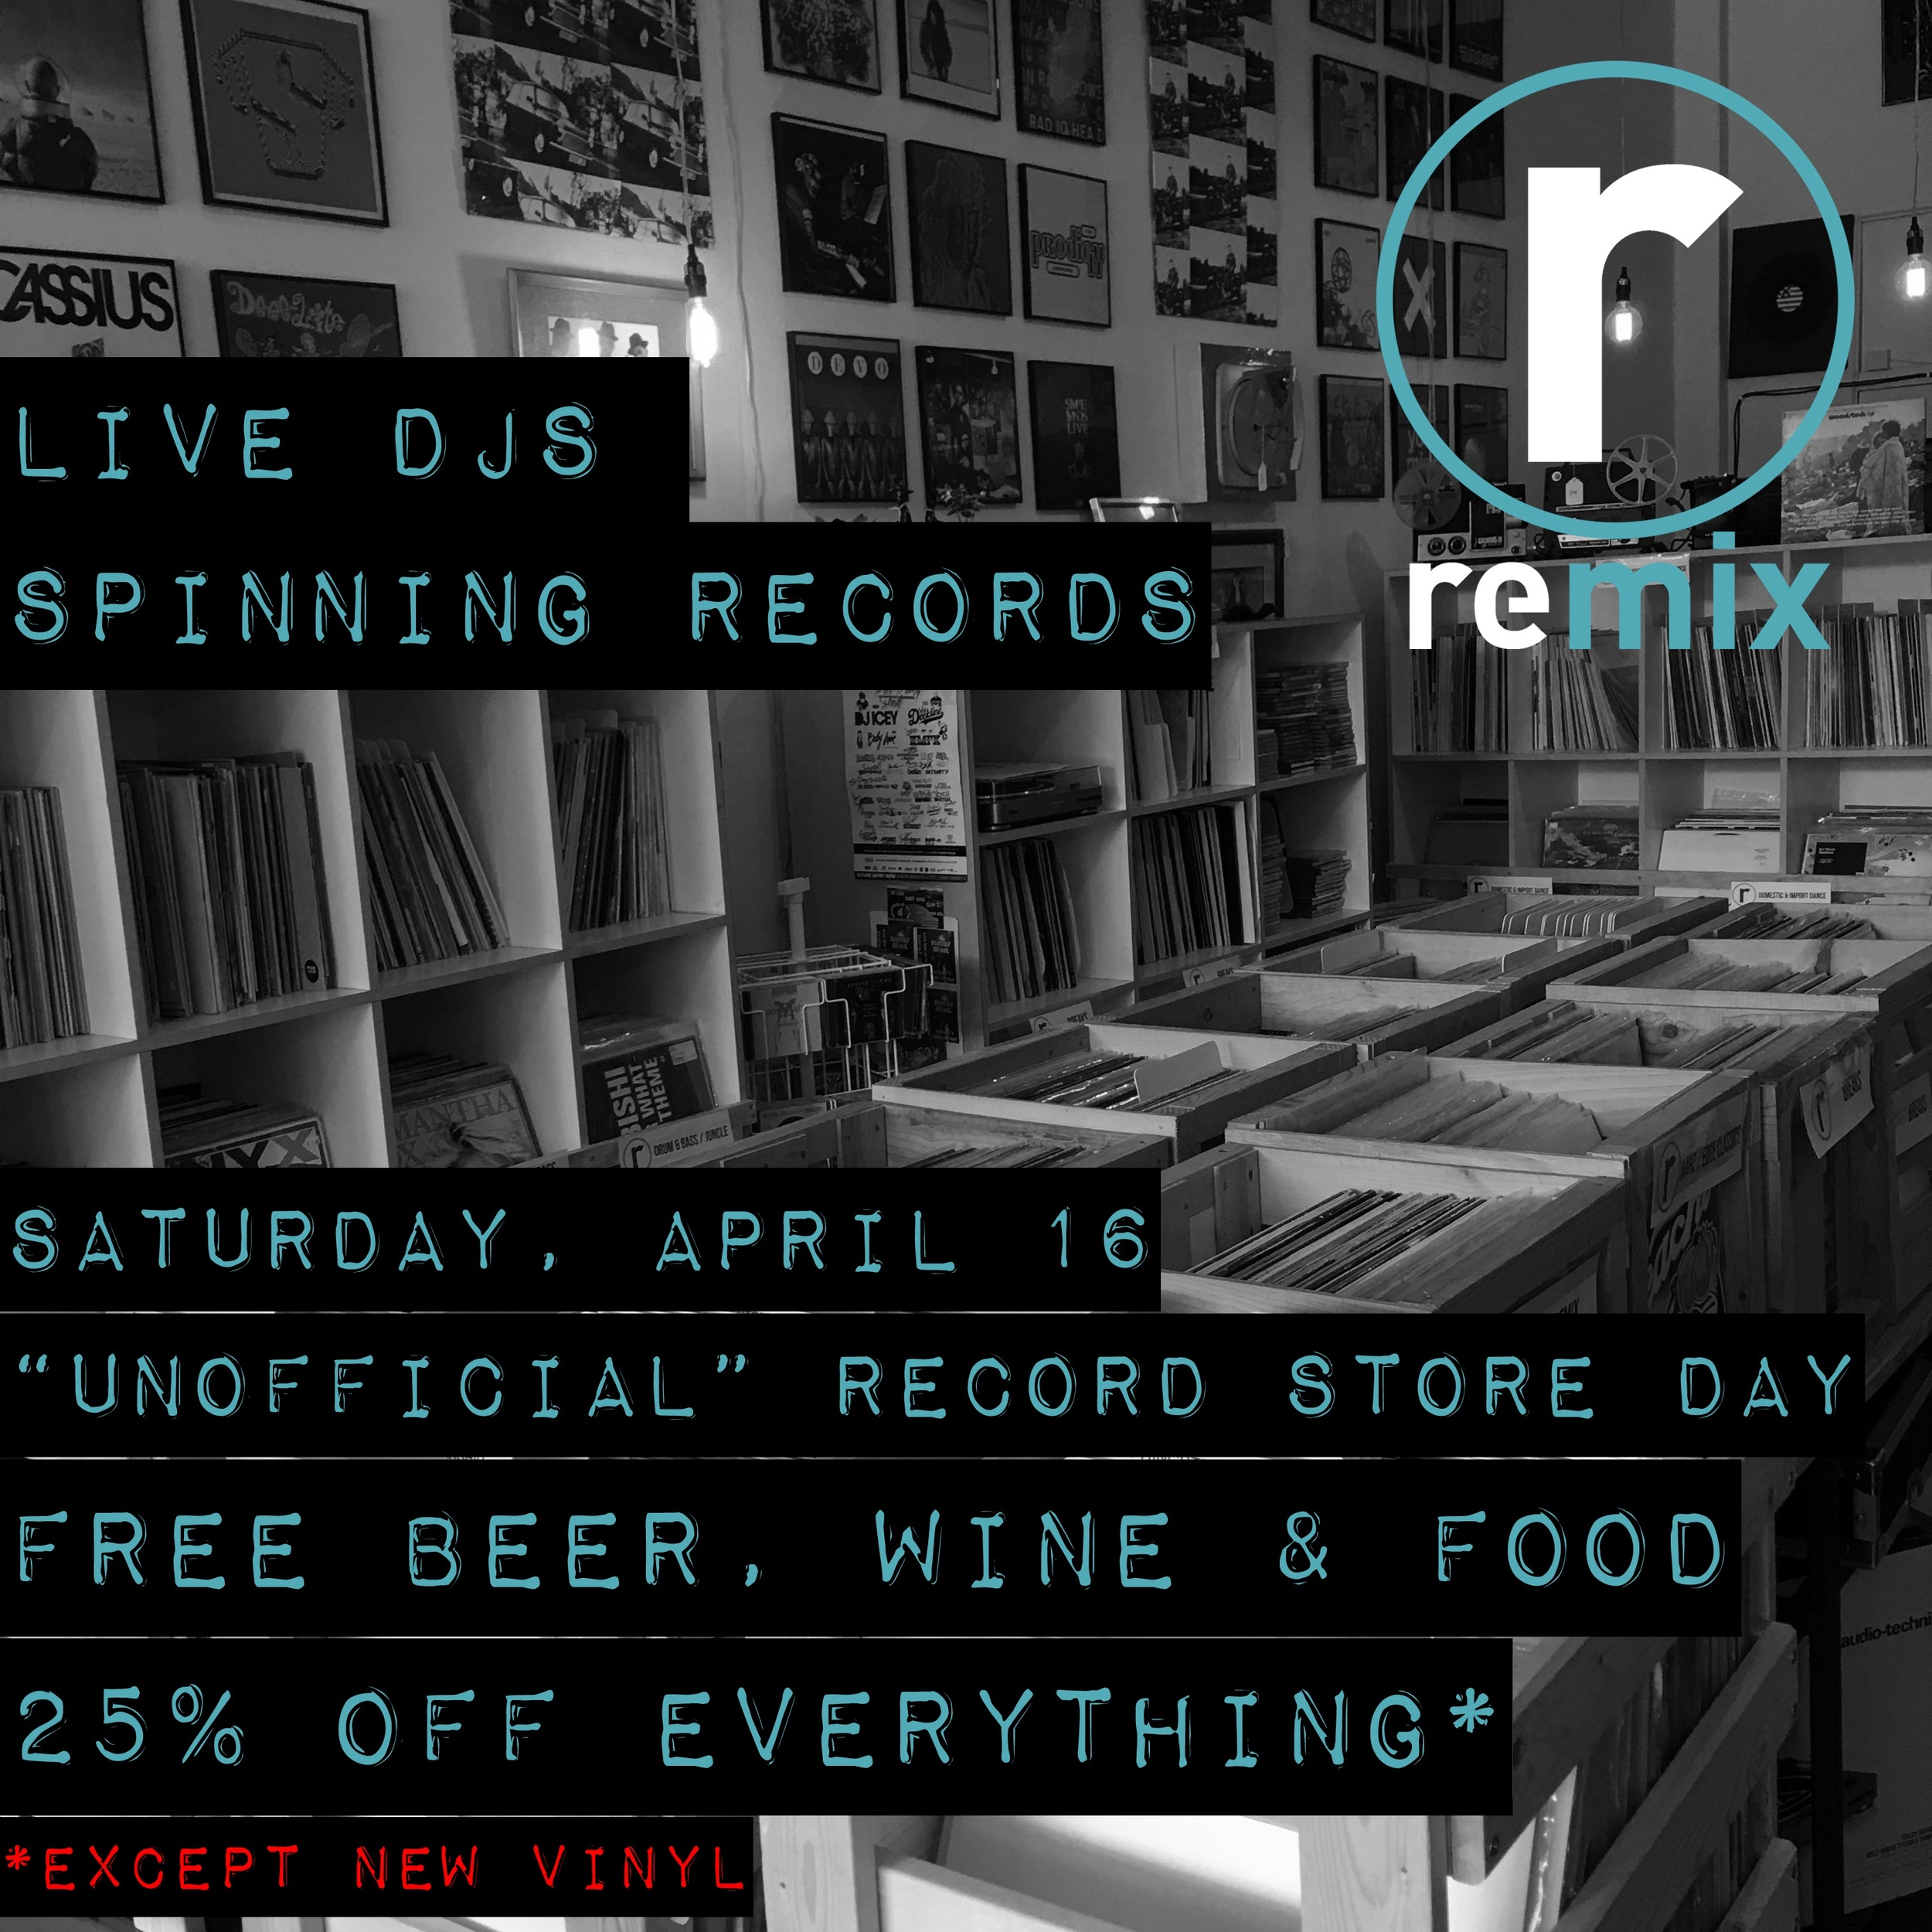 UNOFFICIAL RECORD STORE DAY!